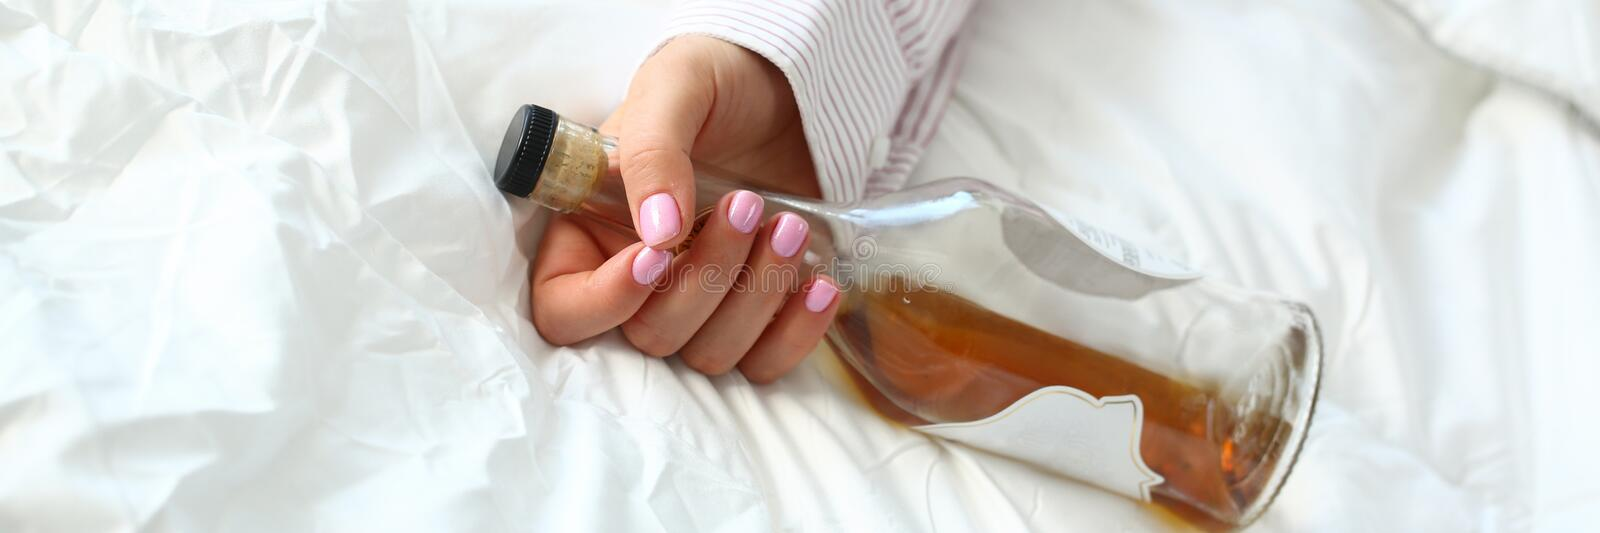 Young woman lying in bed deadly drunken. Holding near-empty bottle of booze. Female intoxicated with alcohol after tough night party. Alcoholism habitual stock images